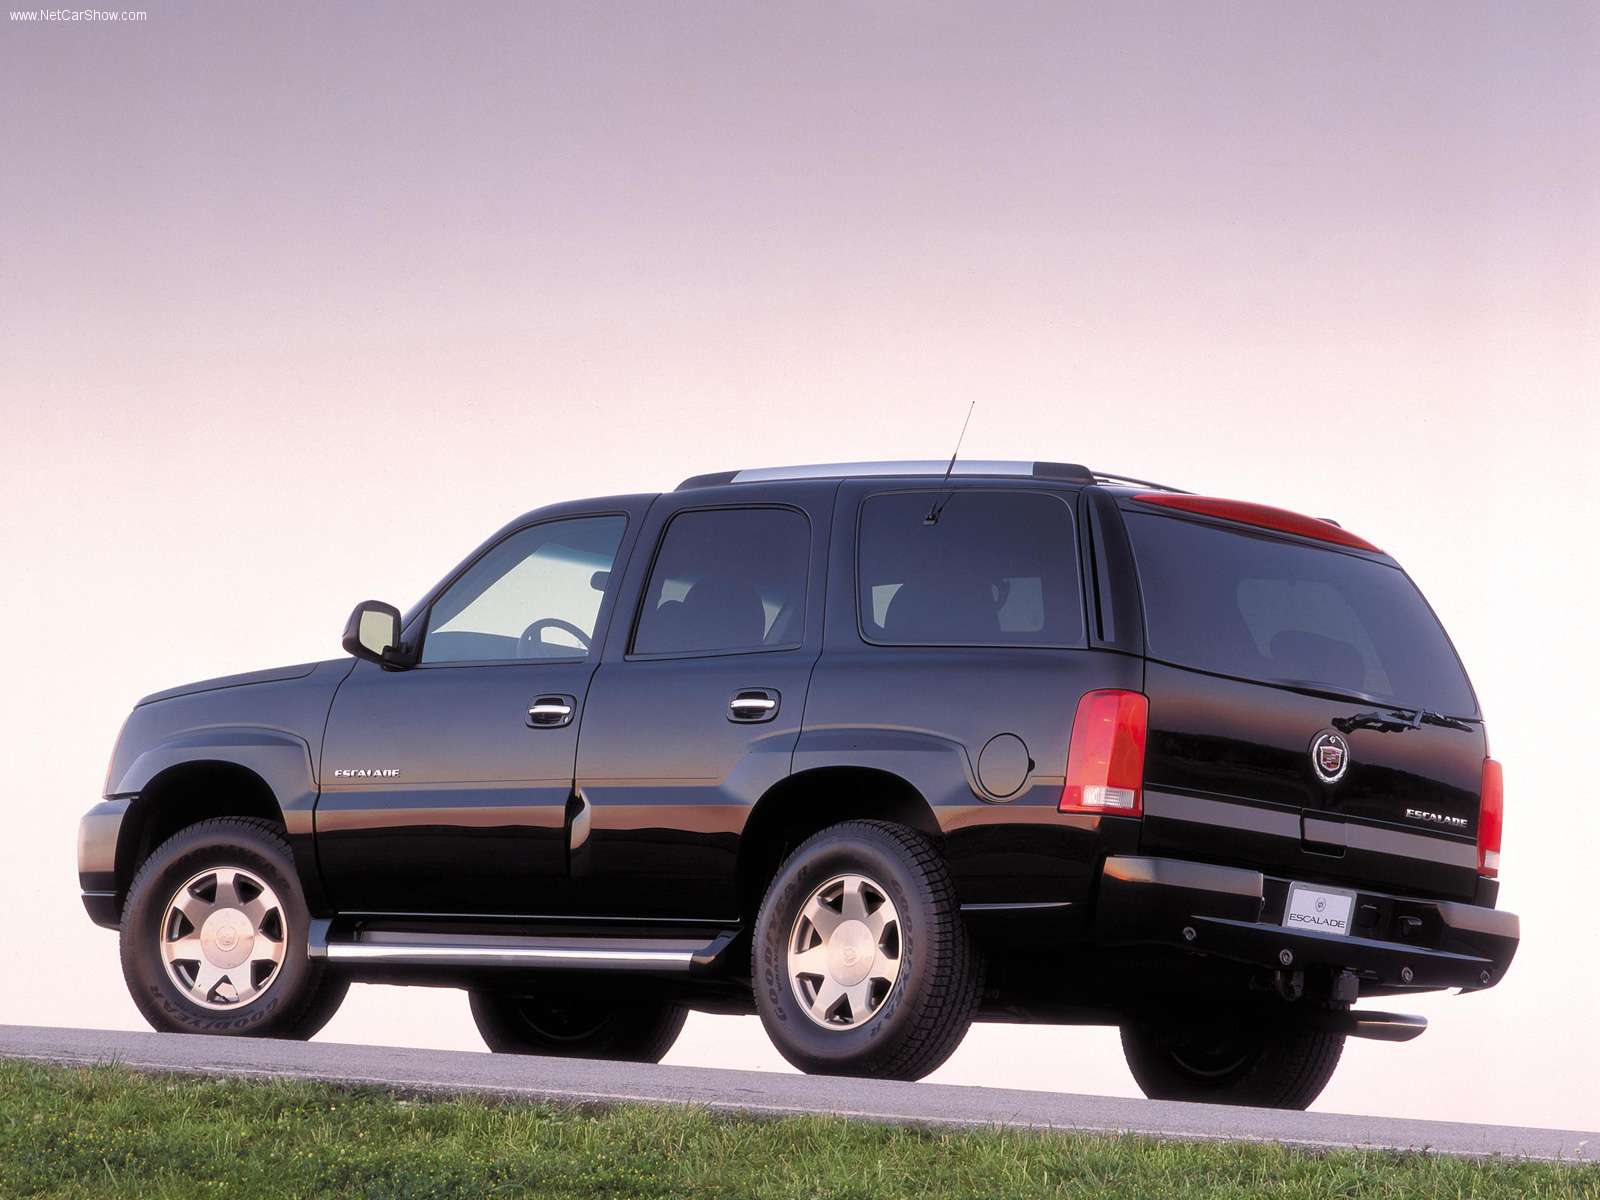 Tuning Cadillac Escalade Suv 2002 Online Accessories And Spare Parts For Tuning Cadillac